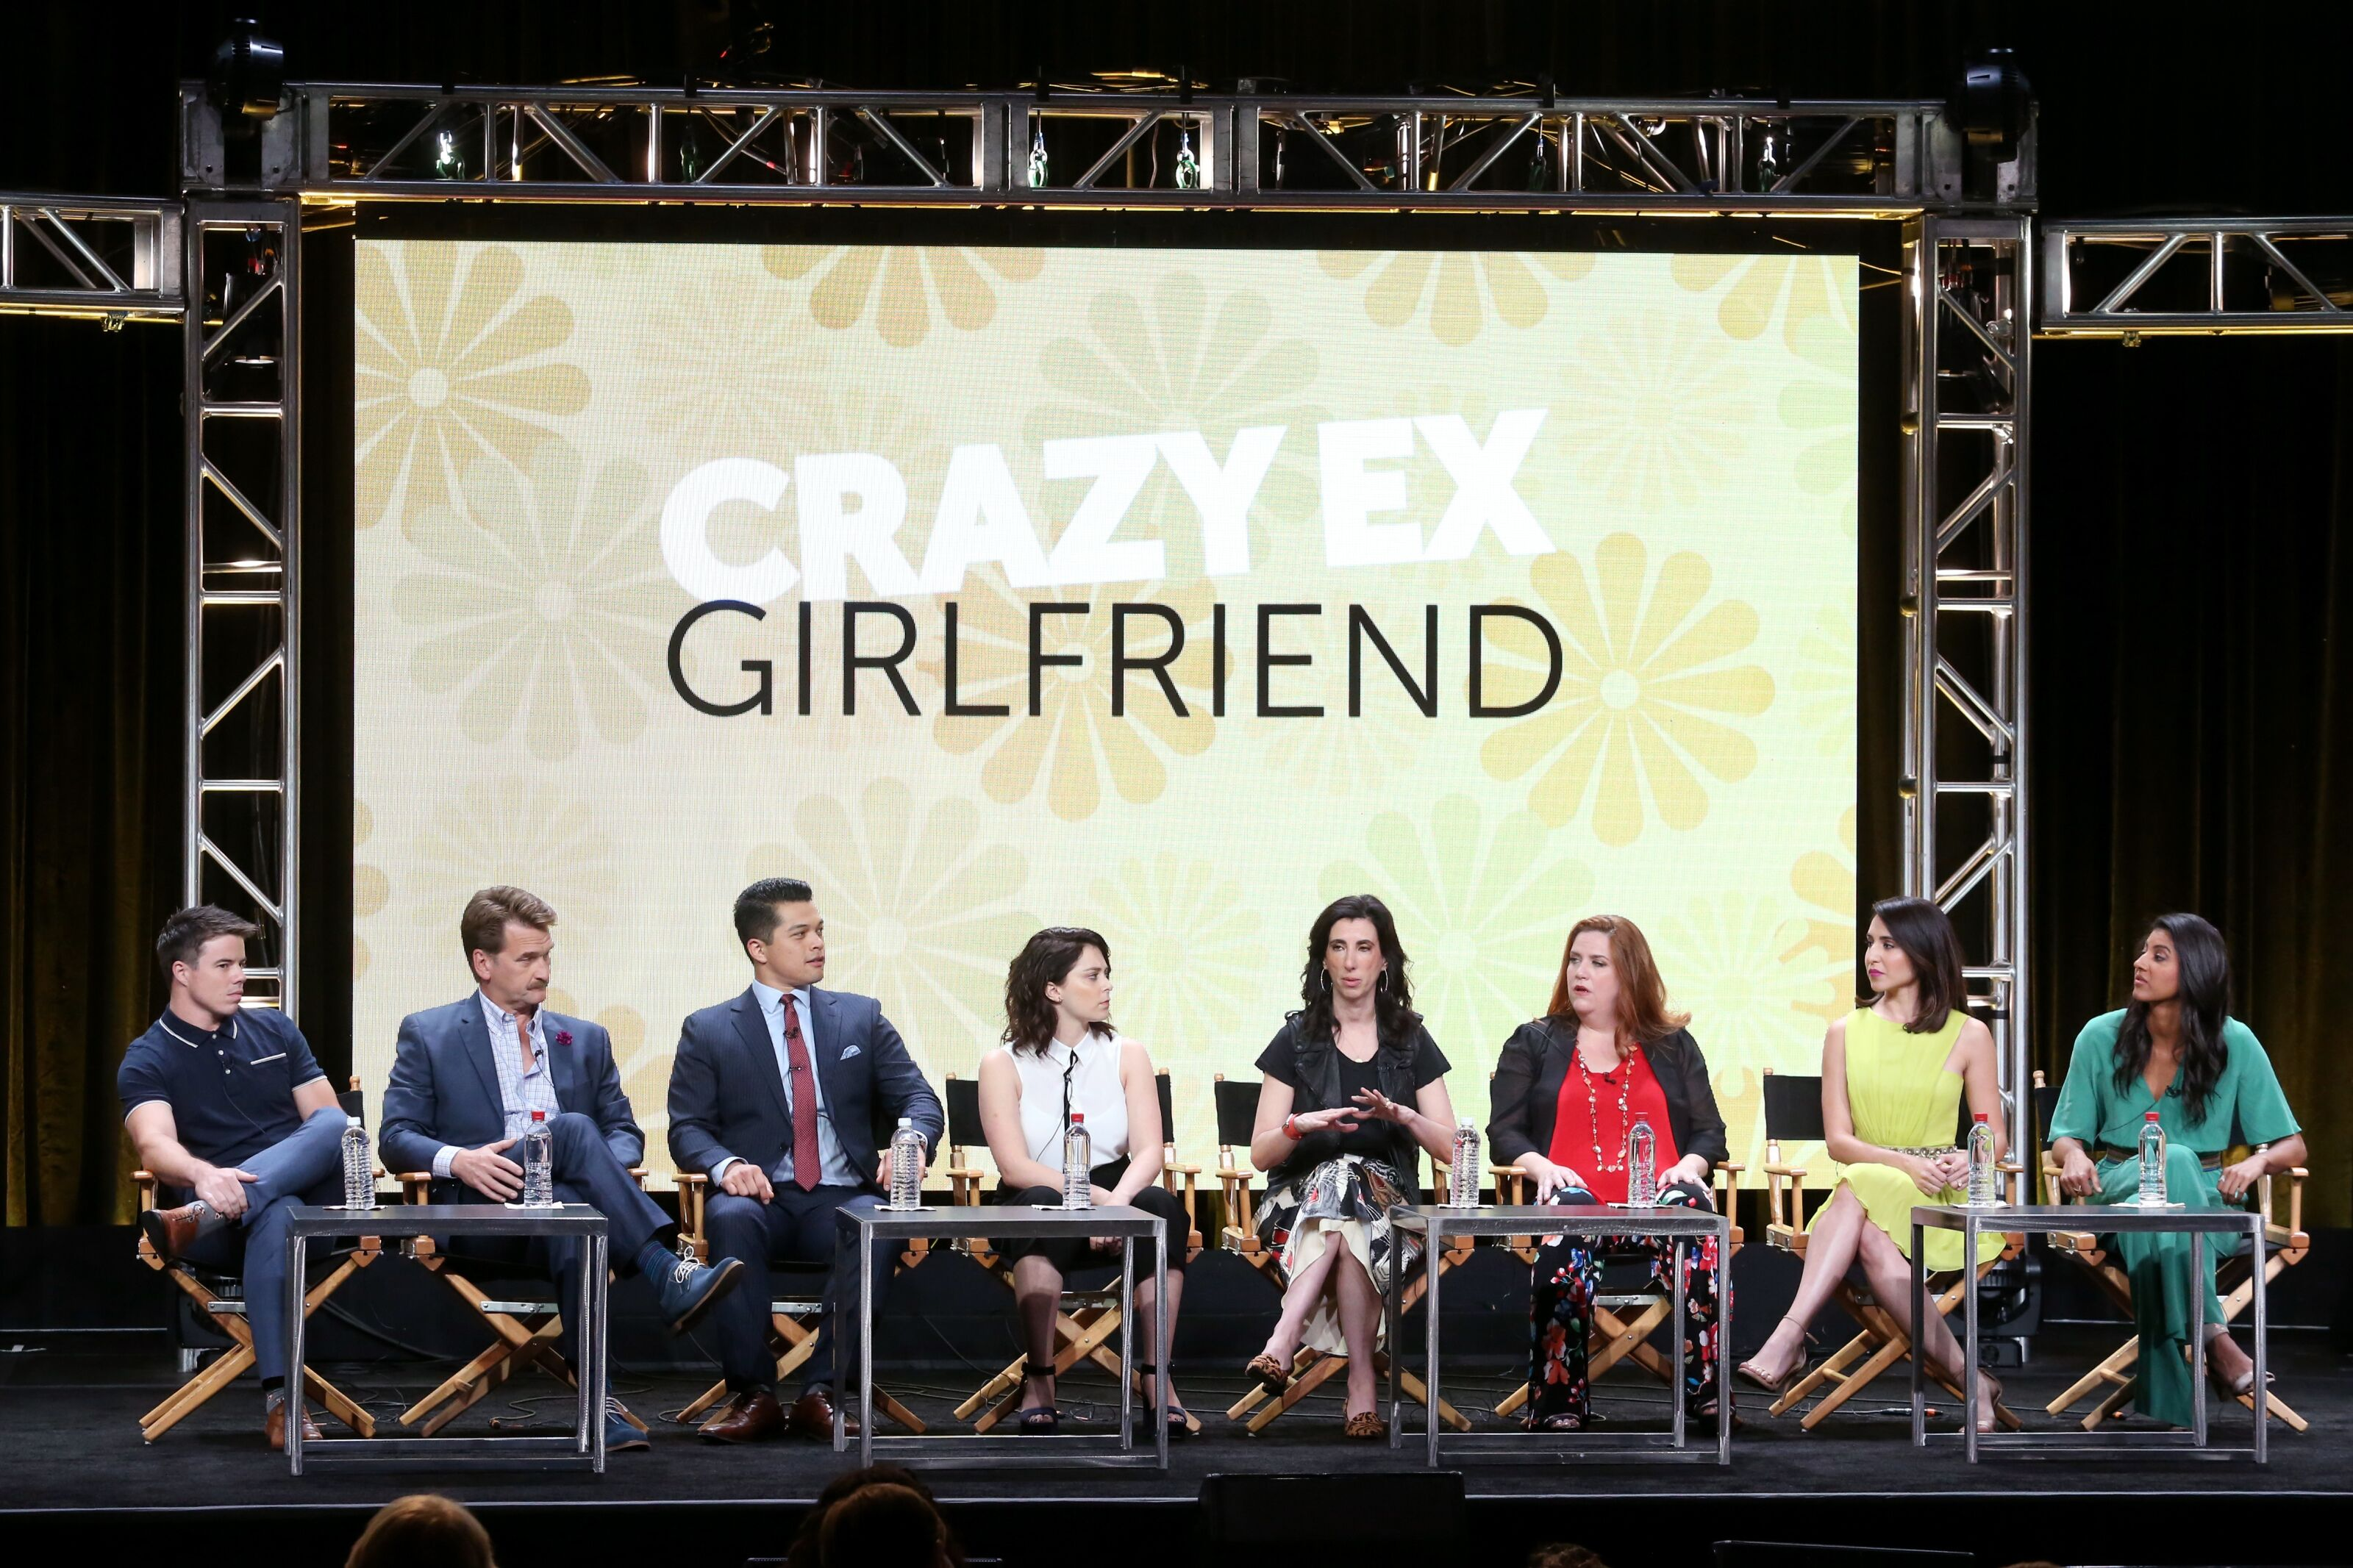 BEVERLY HILLS, CA - AUGUST 02: (L-R) Actors David Hull, Pete Gardner, Vincent Rodriguez III, actor/executive producer Rachel Bloom, executive producer Aline Brosh McKenna, and actors Donna Lynne Champlin, Gabrielle Ruiz, and Vella Lovell of 'Crazy Ex-Girlfriend' speak onstage during the CW portion of the 2017 Summer Television Critics Association Press Tour at The Beverly Hilton Hotel on August 2, 2017 in Beverly Hills, California. (Photo by Frederick M. Brown/Getty Images)